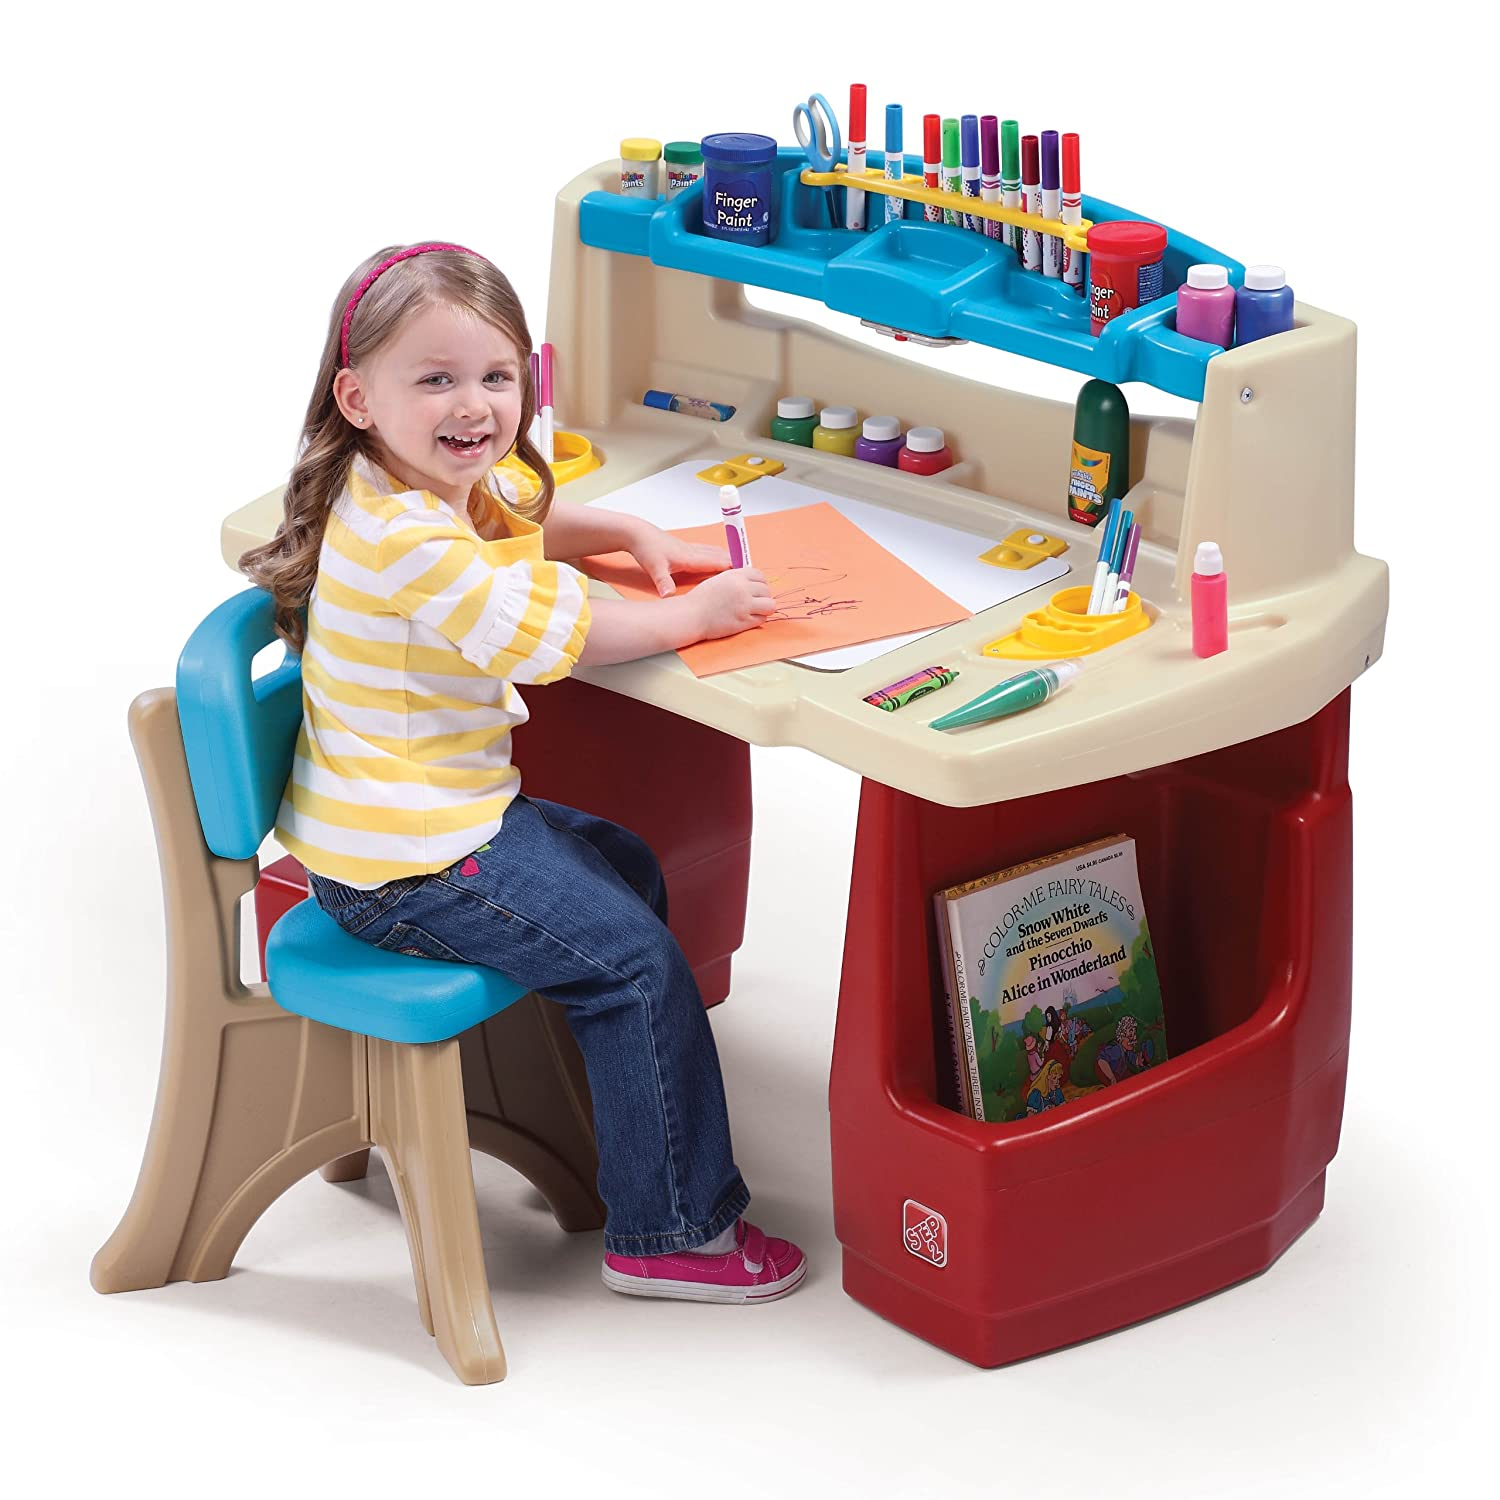 Amazon Step2 Deluxe Art Master Kids Desk Toys & Games